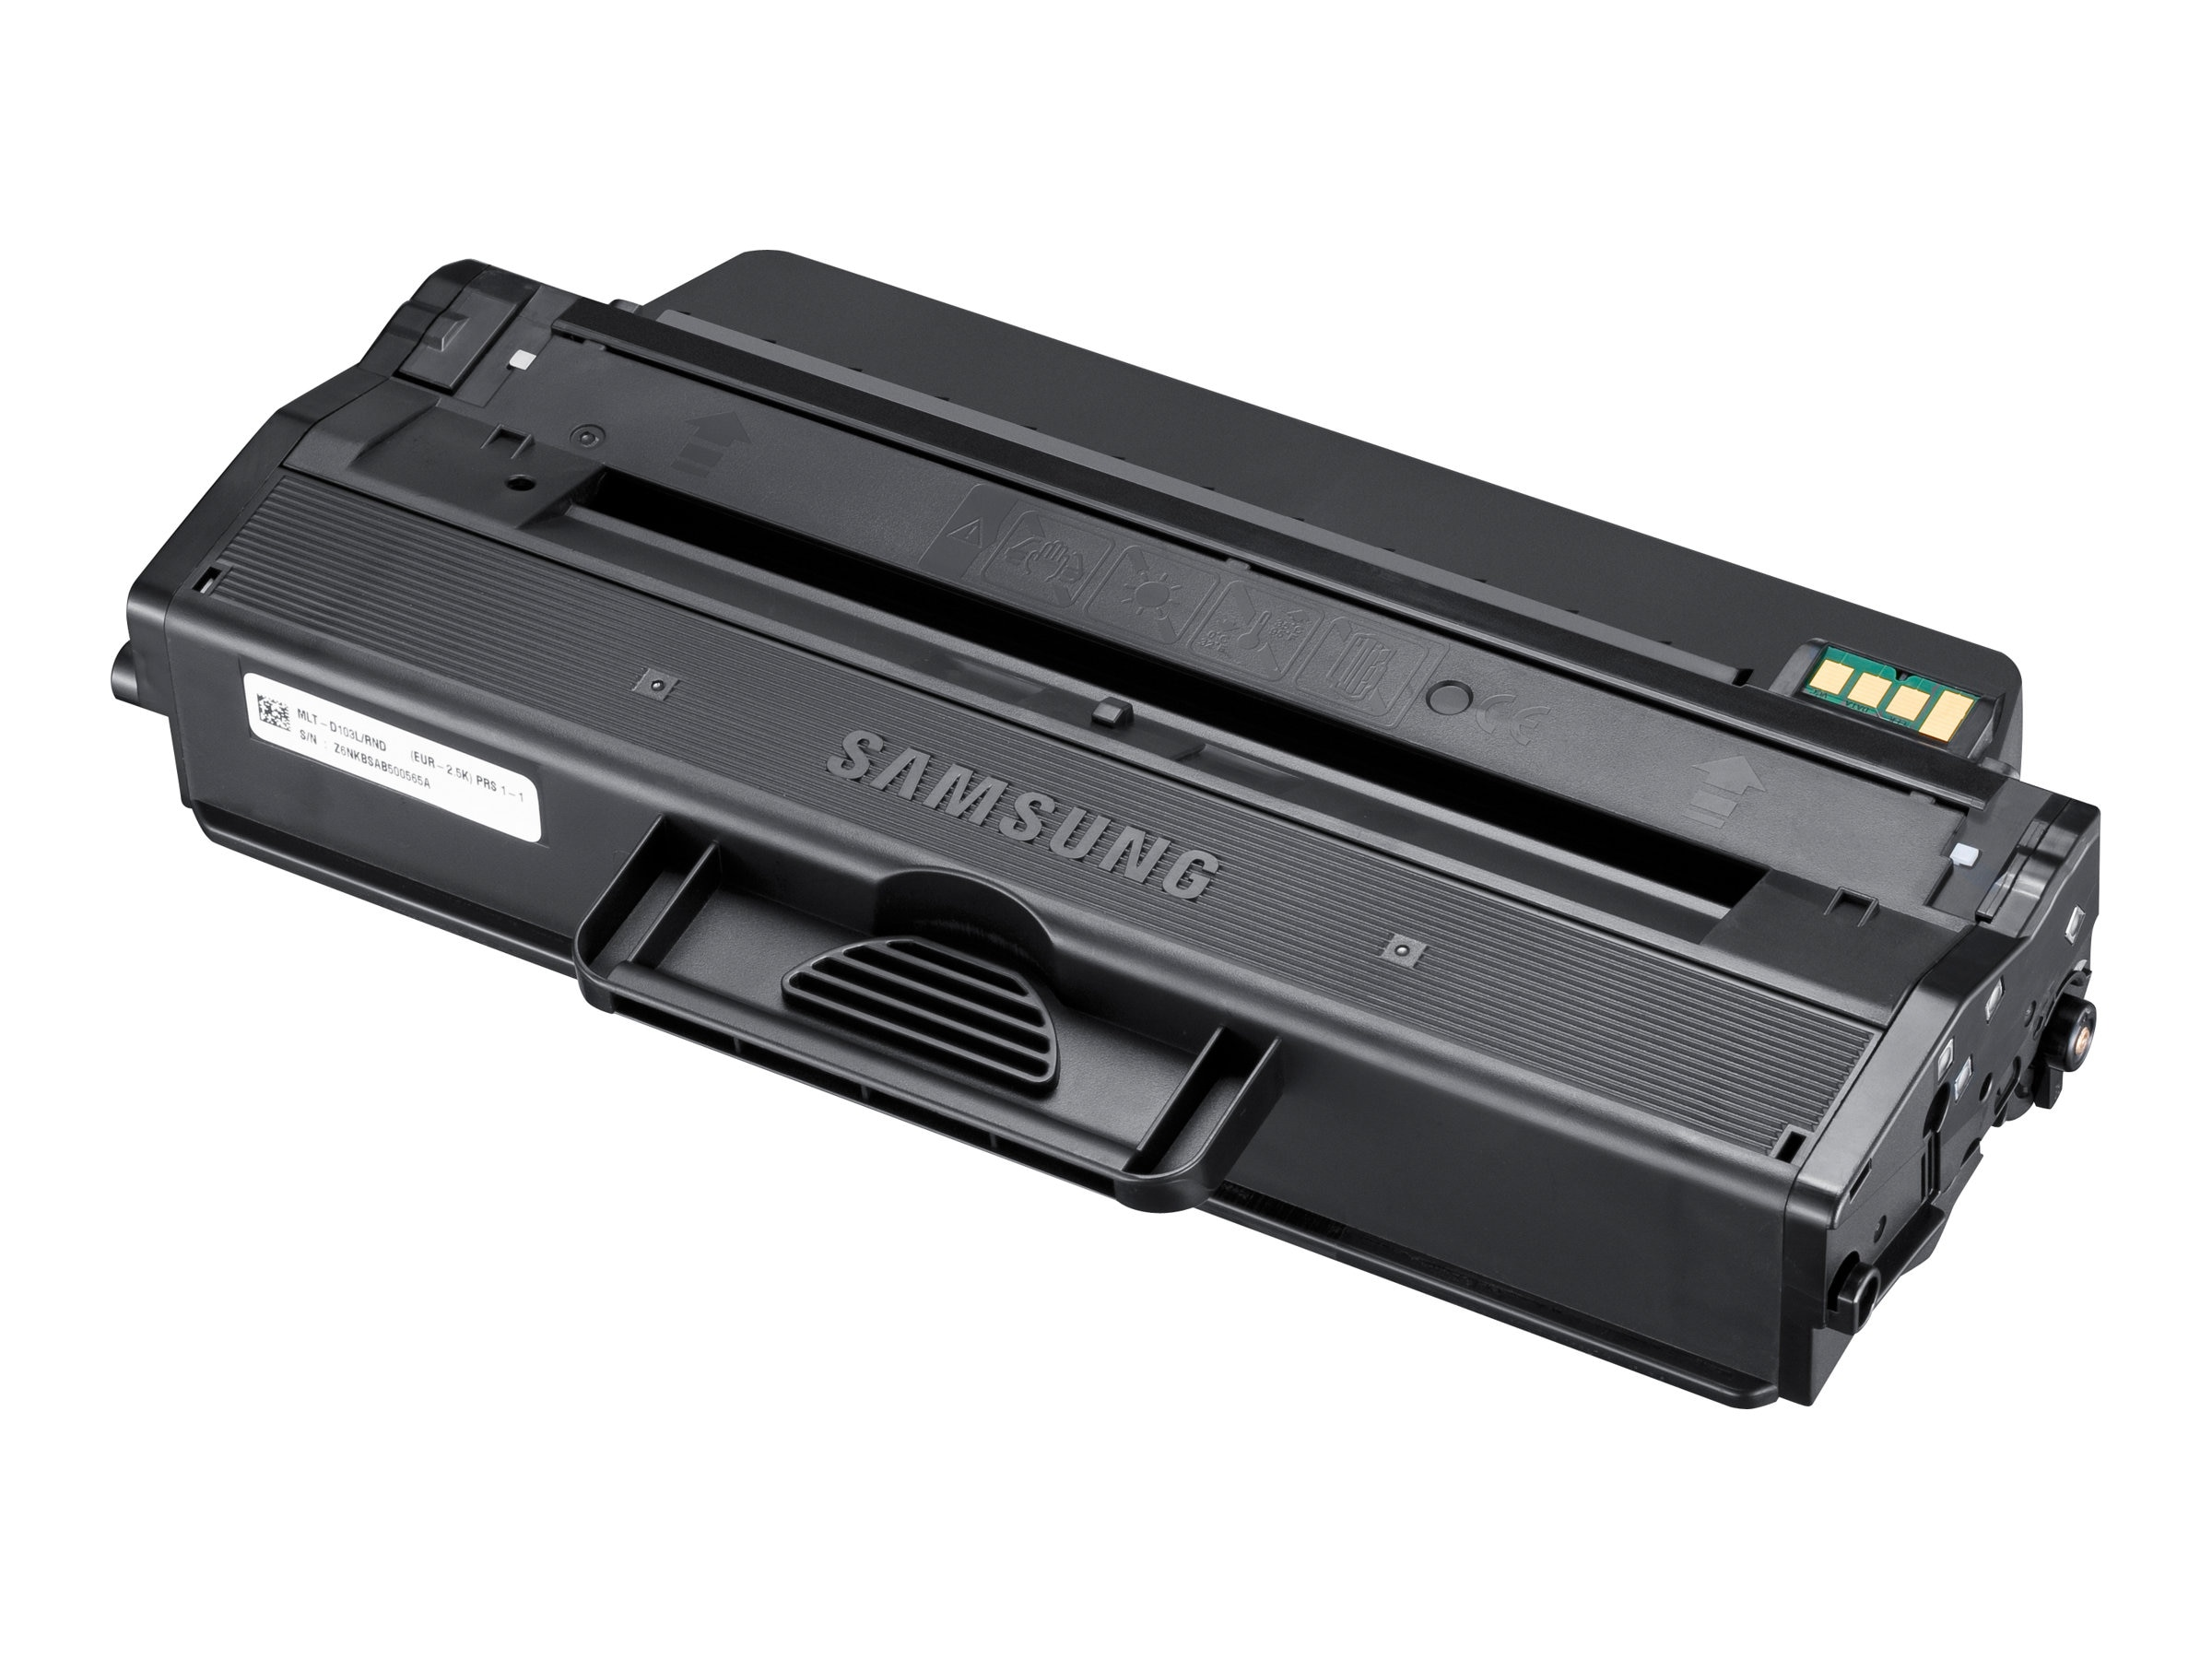 Samsung Black Toner Cartridge for ML-2950ND & SCX-4725FN, MLT-D103S, 13190202, Toner and Imaging Components